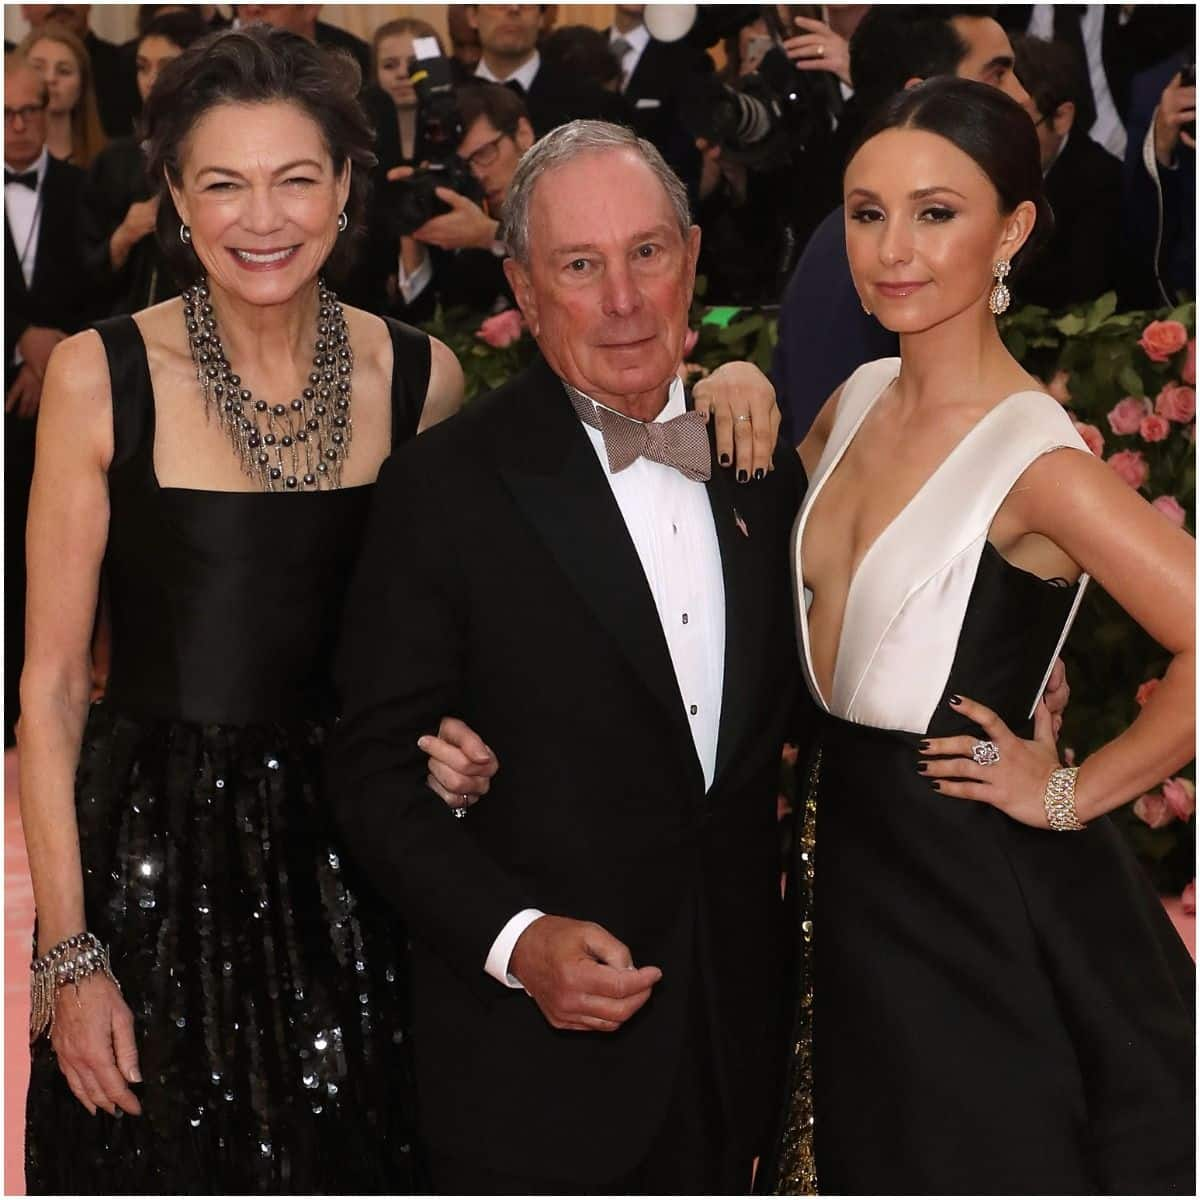 Diana Taylor with Mike Bloomberg and his daughter Georgina Bloomberg